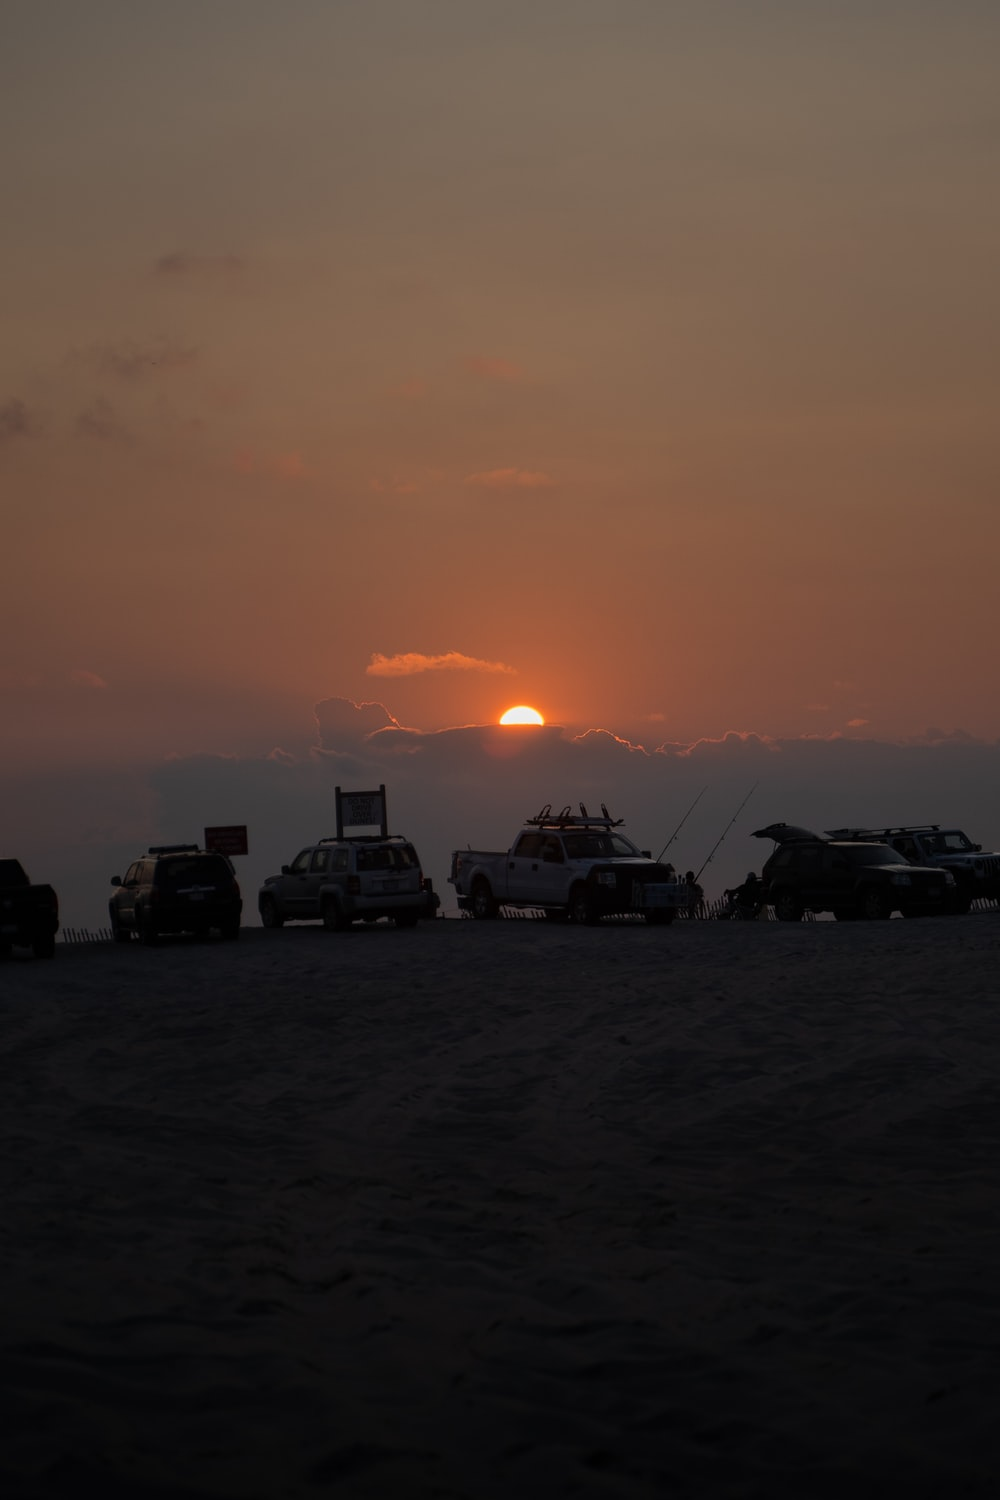 silhouette of cars during sunset